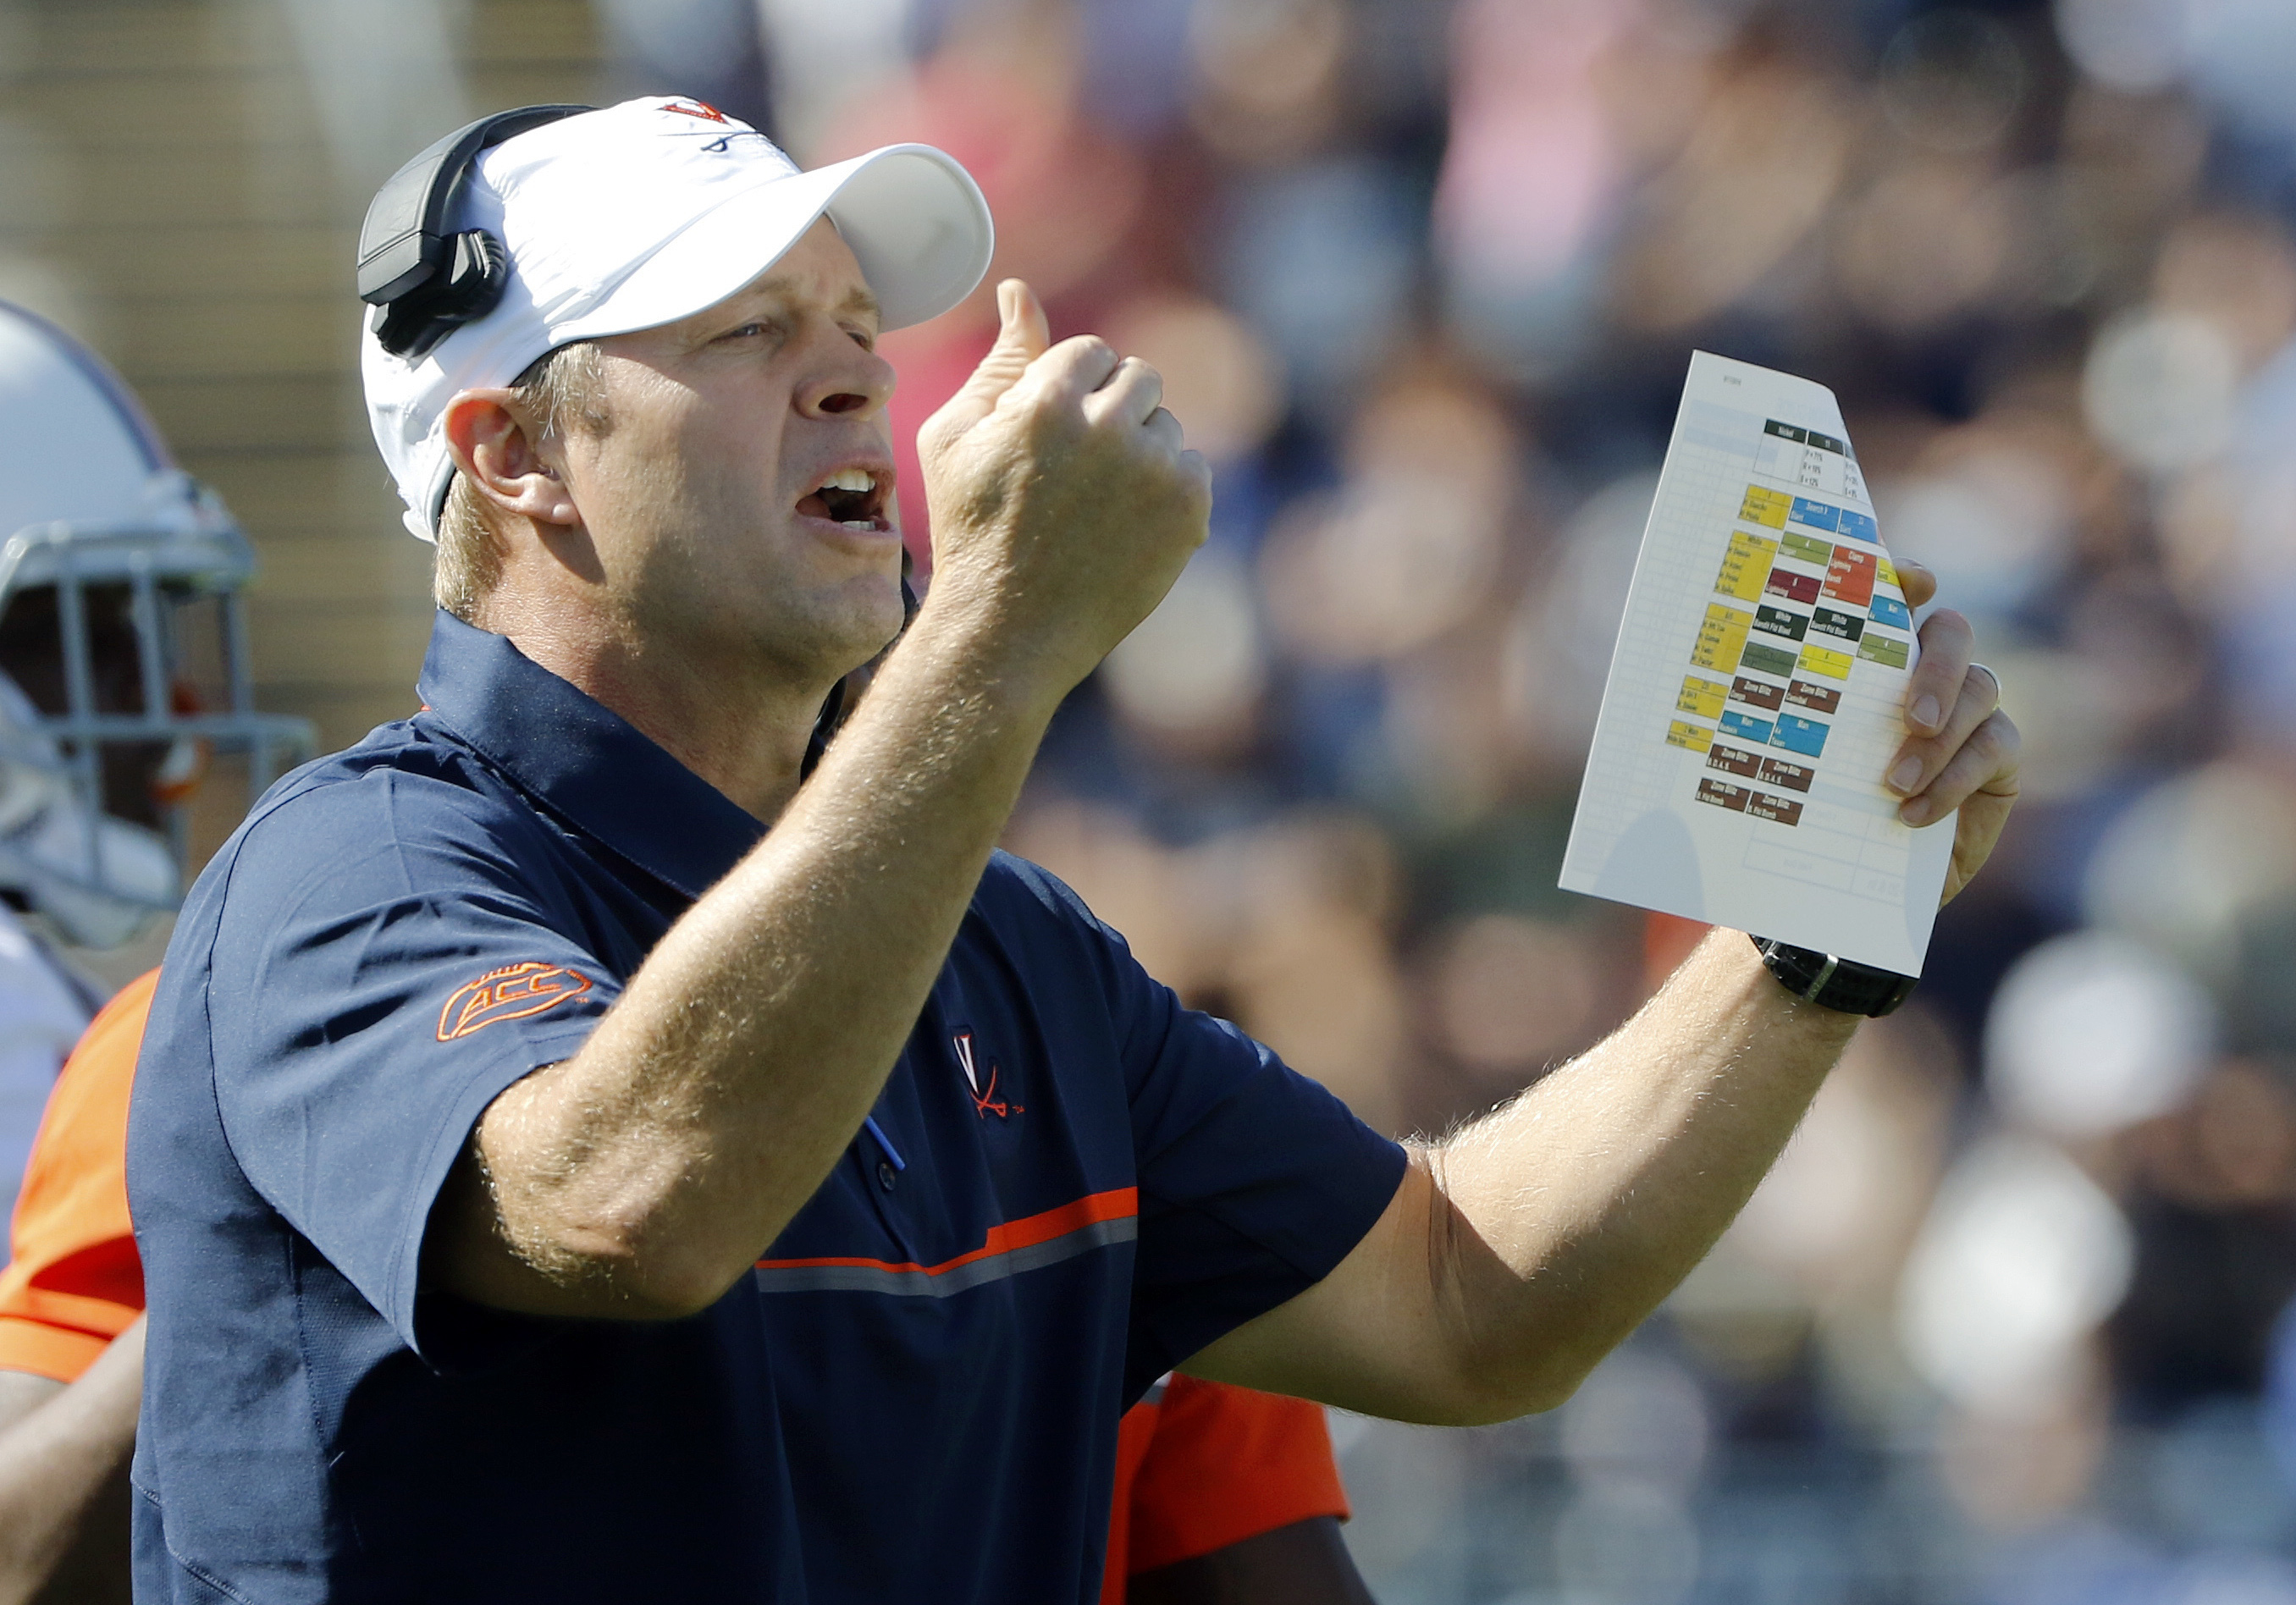 Virginia head coach Bronco Mendenhall instructs from the sideline in the first half of an NCAA college football game against Connecticut Saturday, Sept. 17, 2016, in East Hartford, Conn. (AP Photo/Bill Sikes)